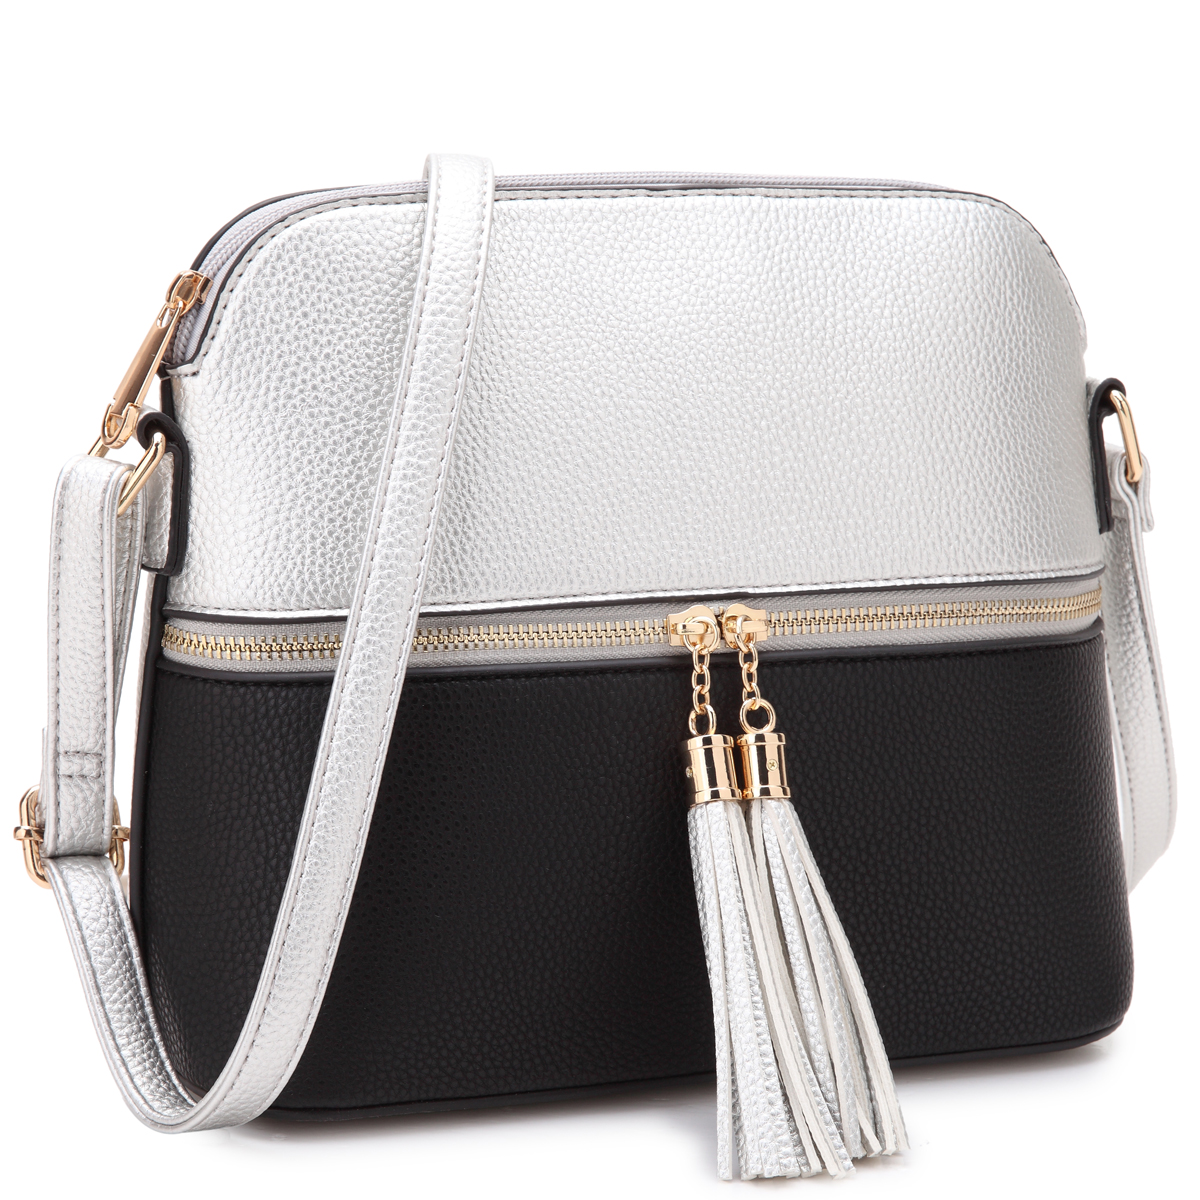 All-In-One Crossbody/ Messenger Bag